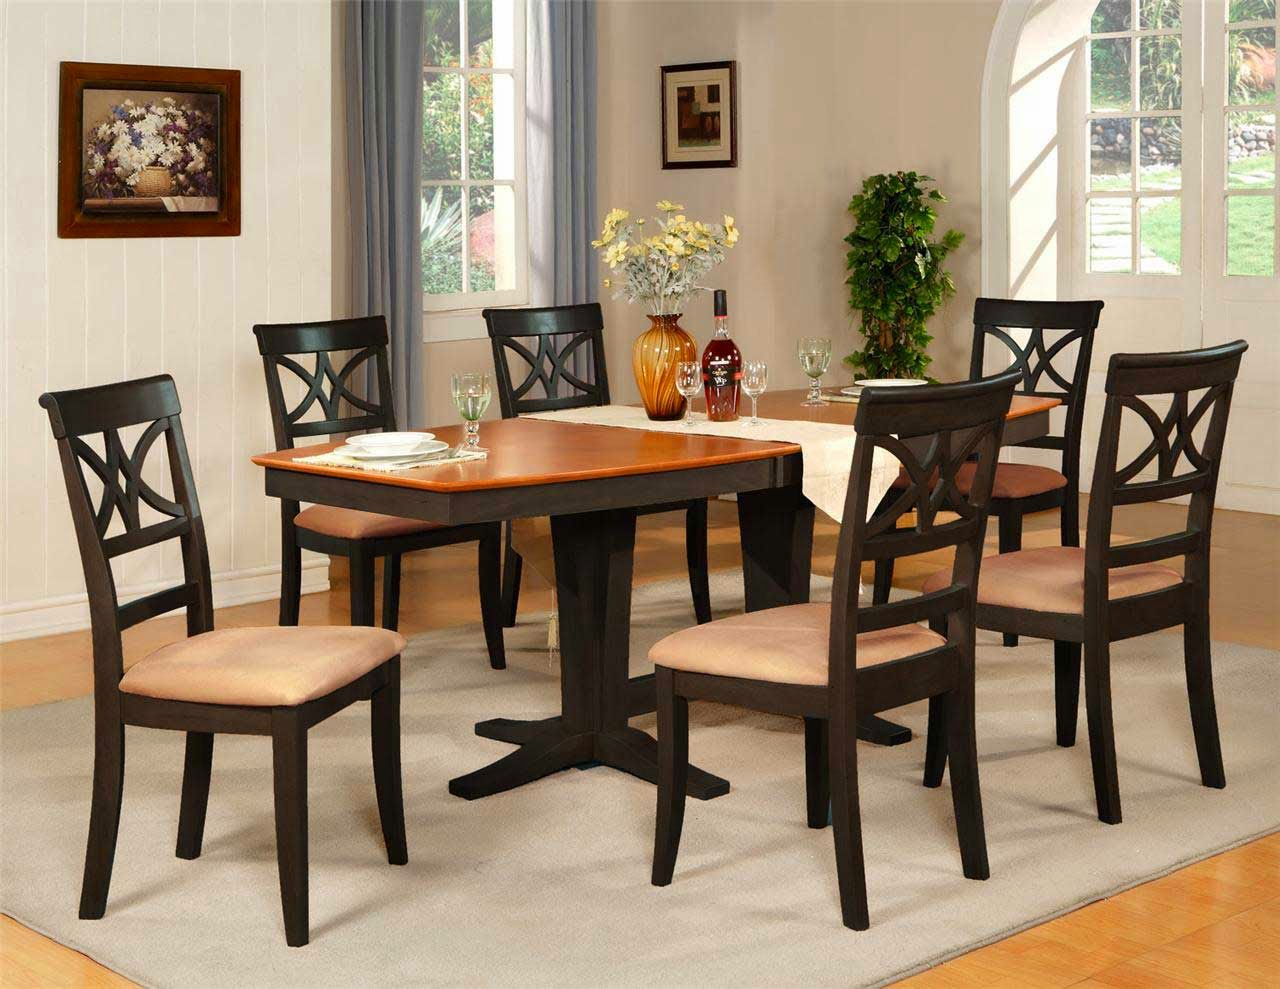 Dining room table centerpiece ideas for Dining room tables used